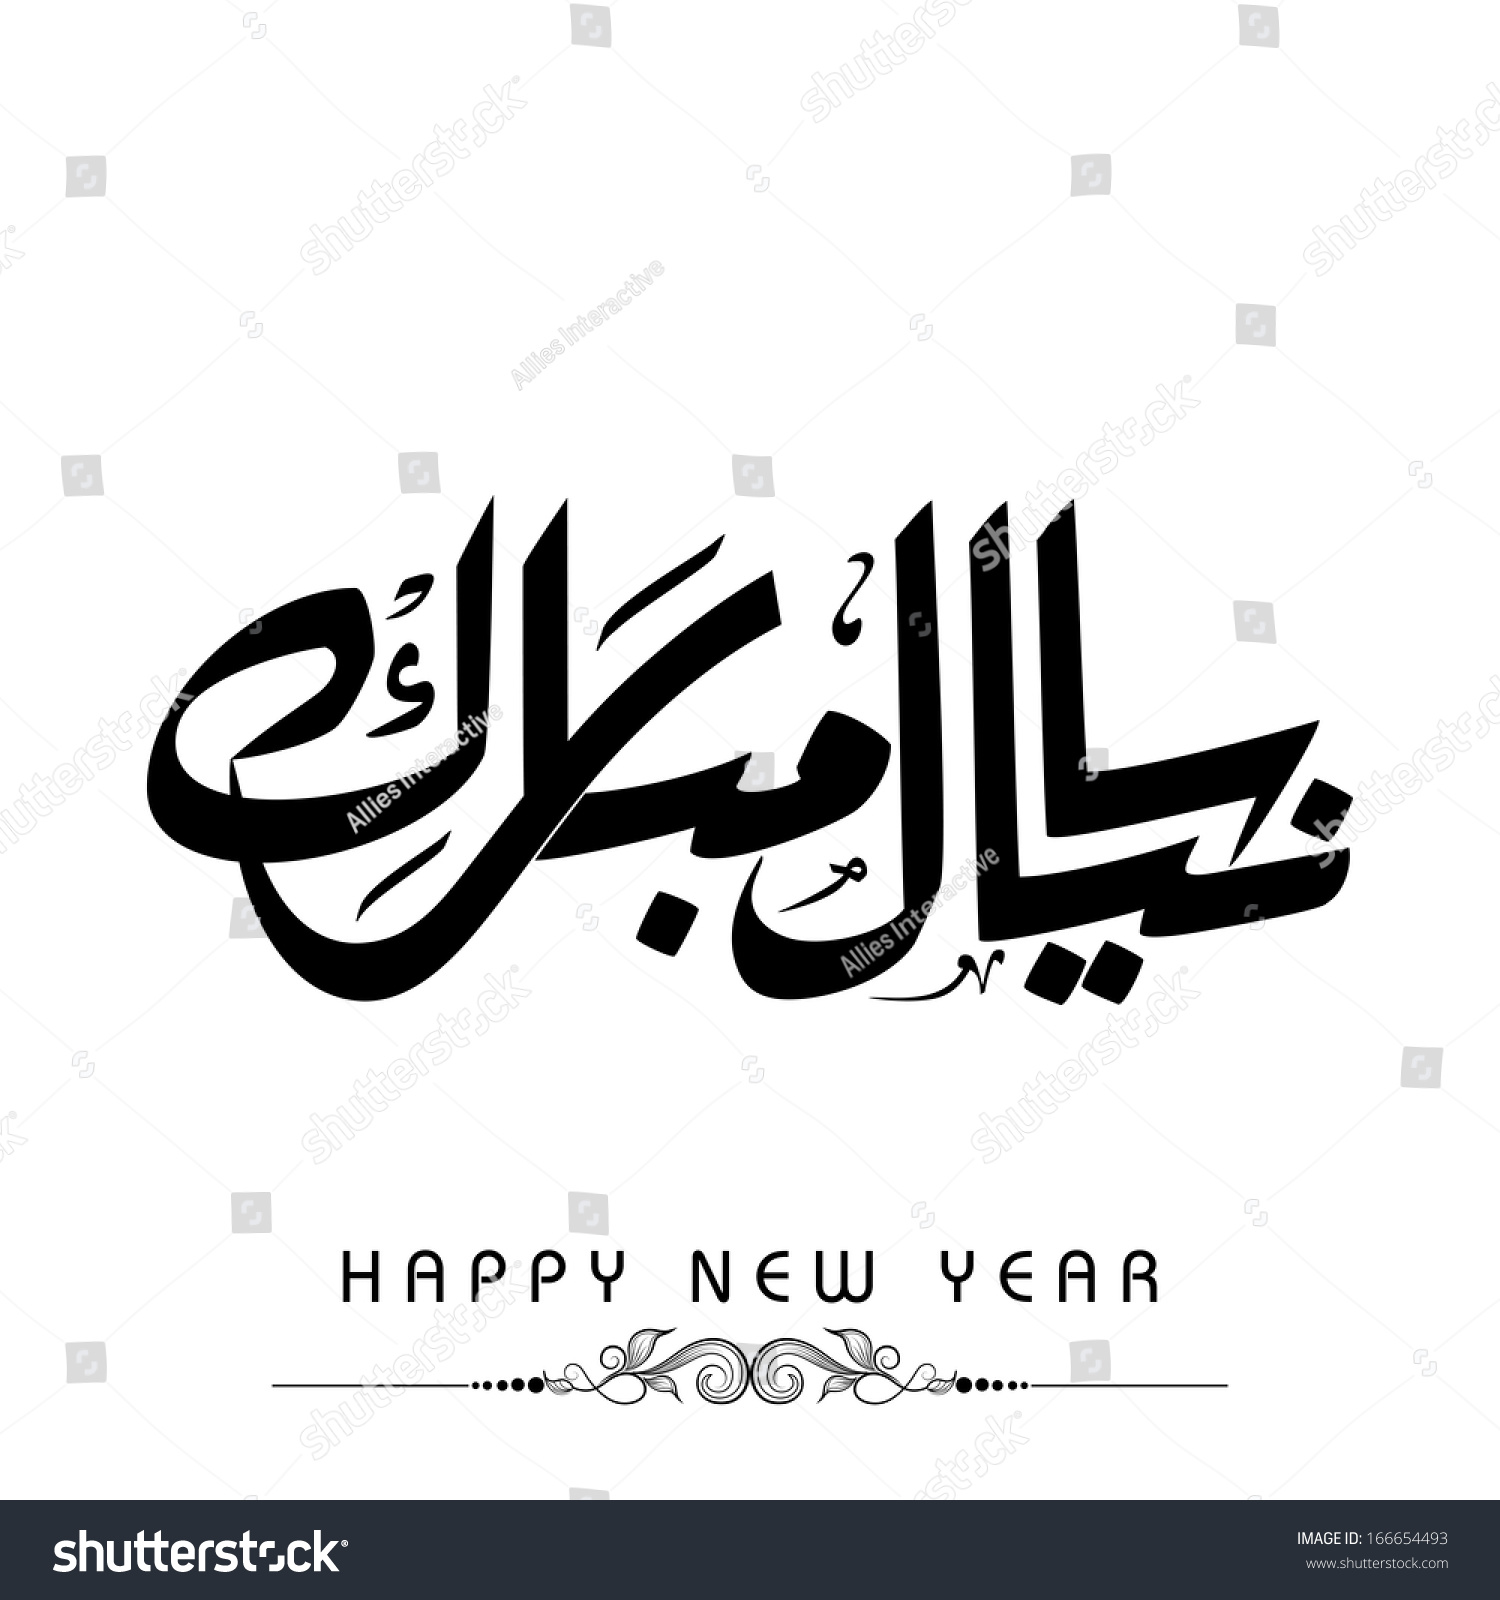 urdu calligraphy of text happy new year on abstract background